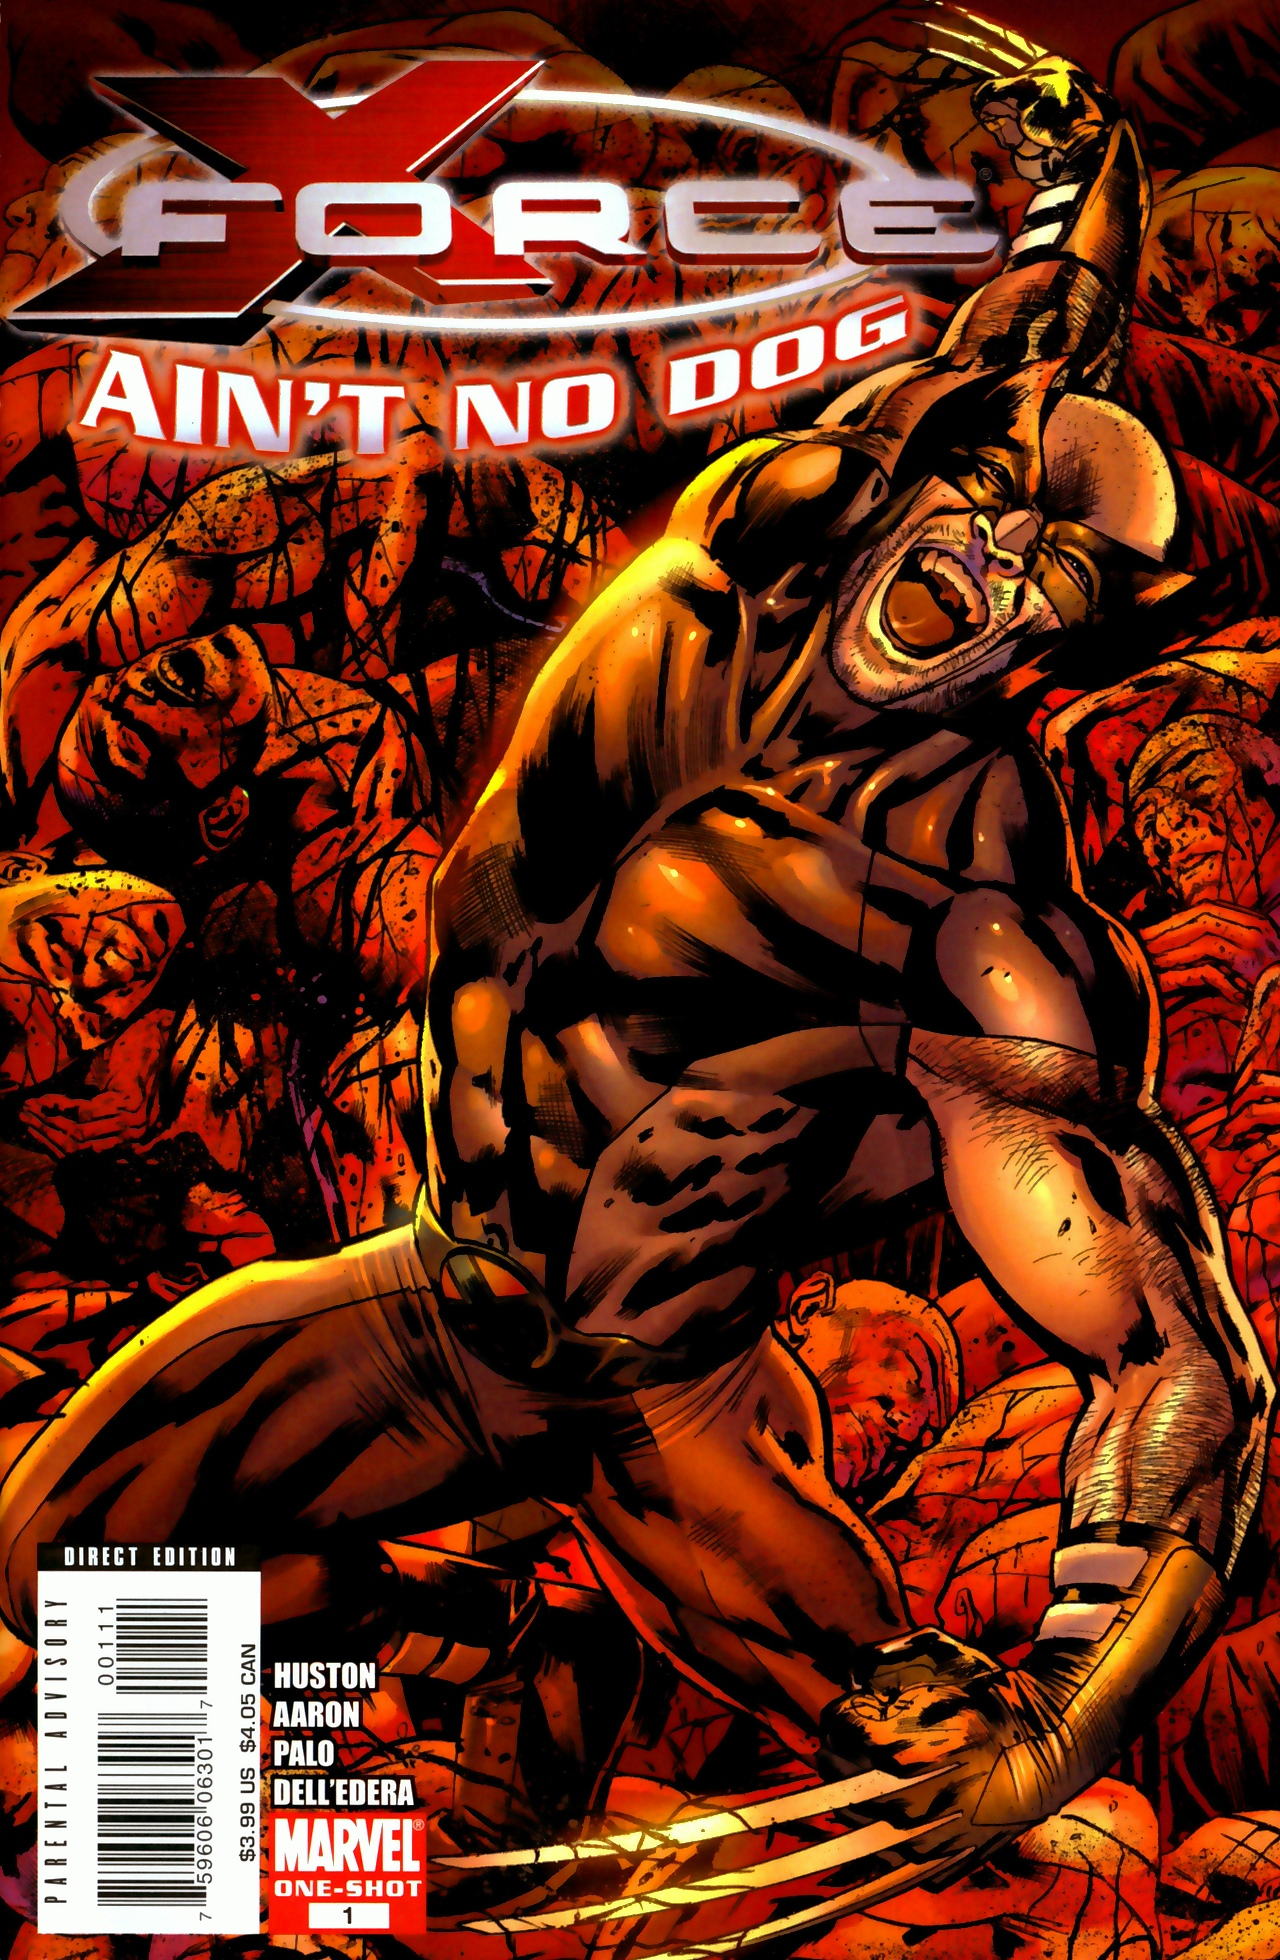 Read online X-Force Special: Ain't No Dog comic -  Issue # Full - 1